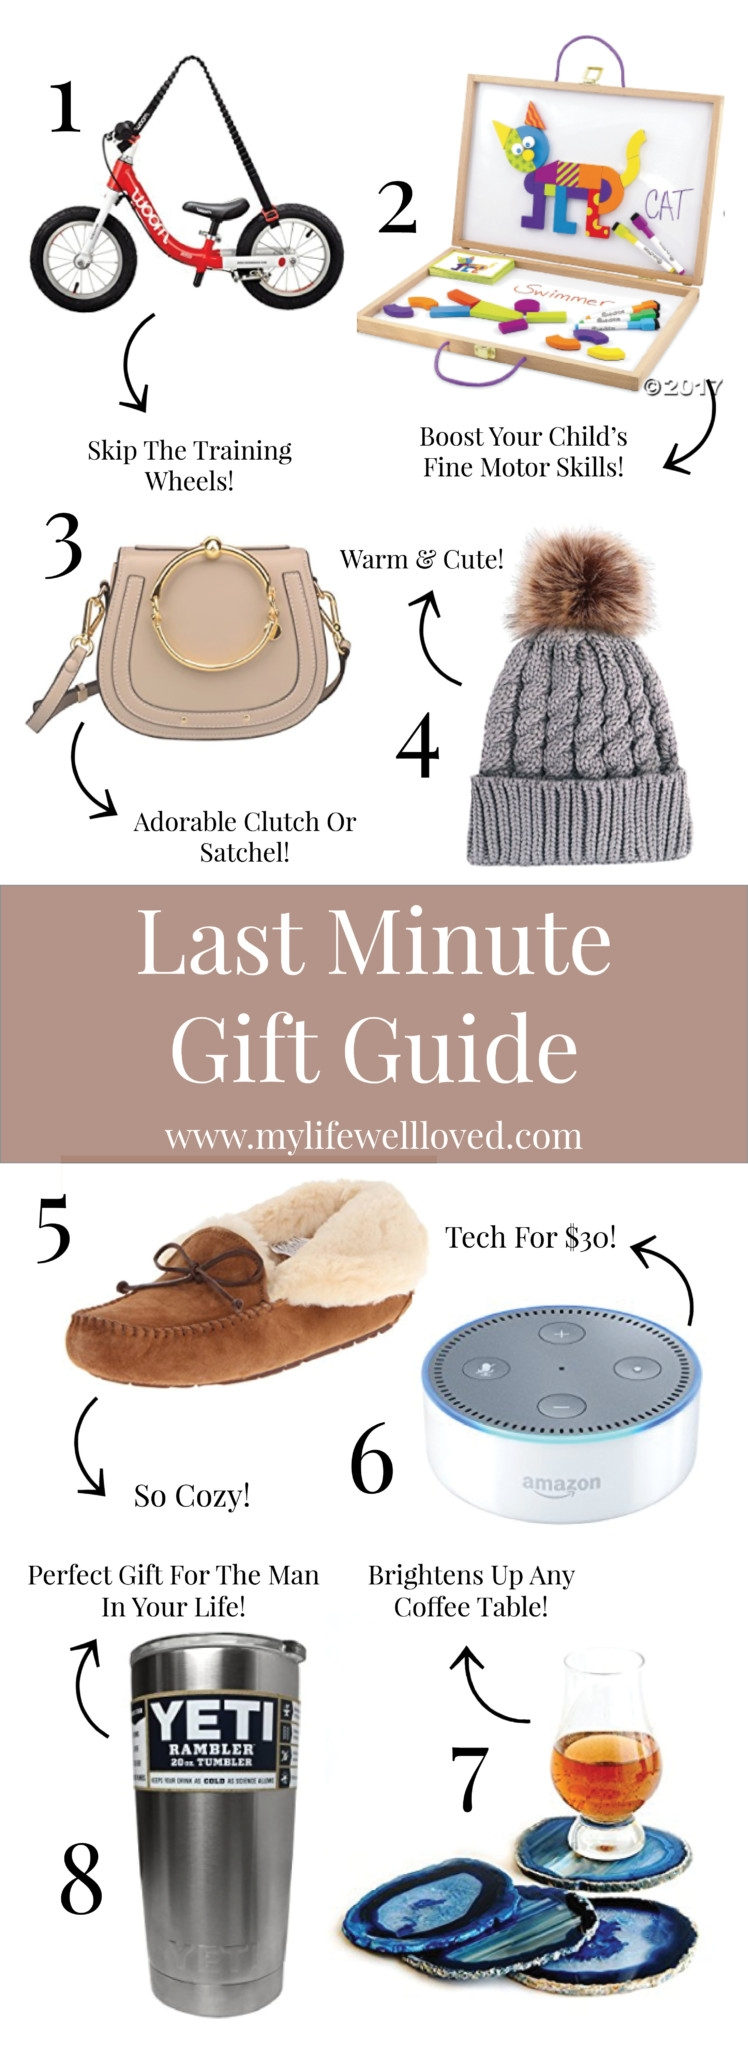 Last Minute Gift Guide // Christmas Gift Ideas for everyone on your list // Christmas Eve Service Outfit Idea // Cute Winter Church Ideas